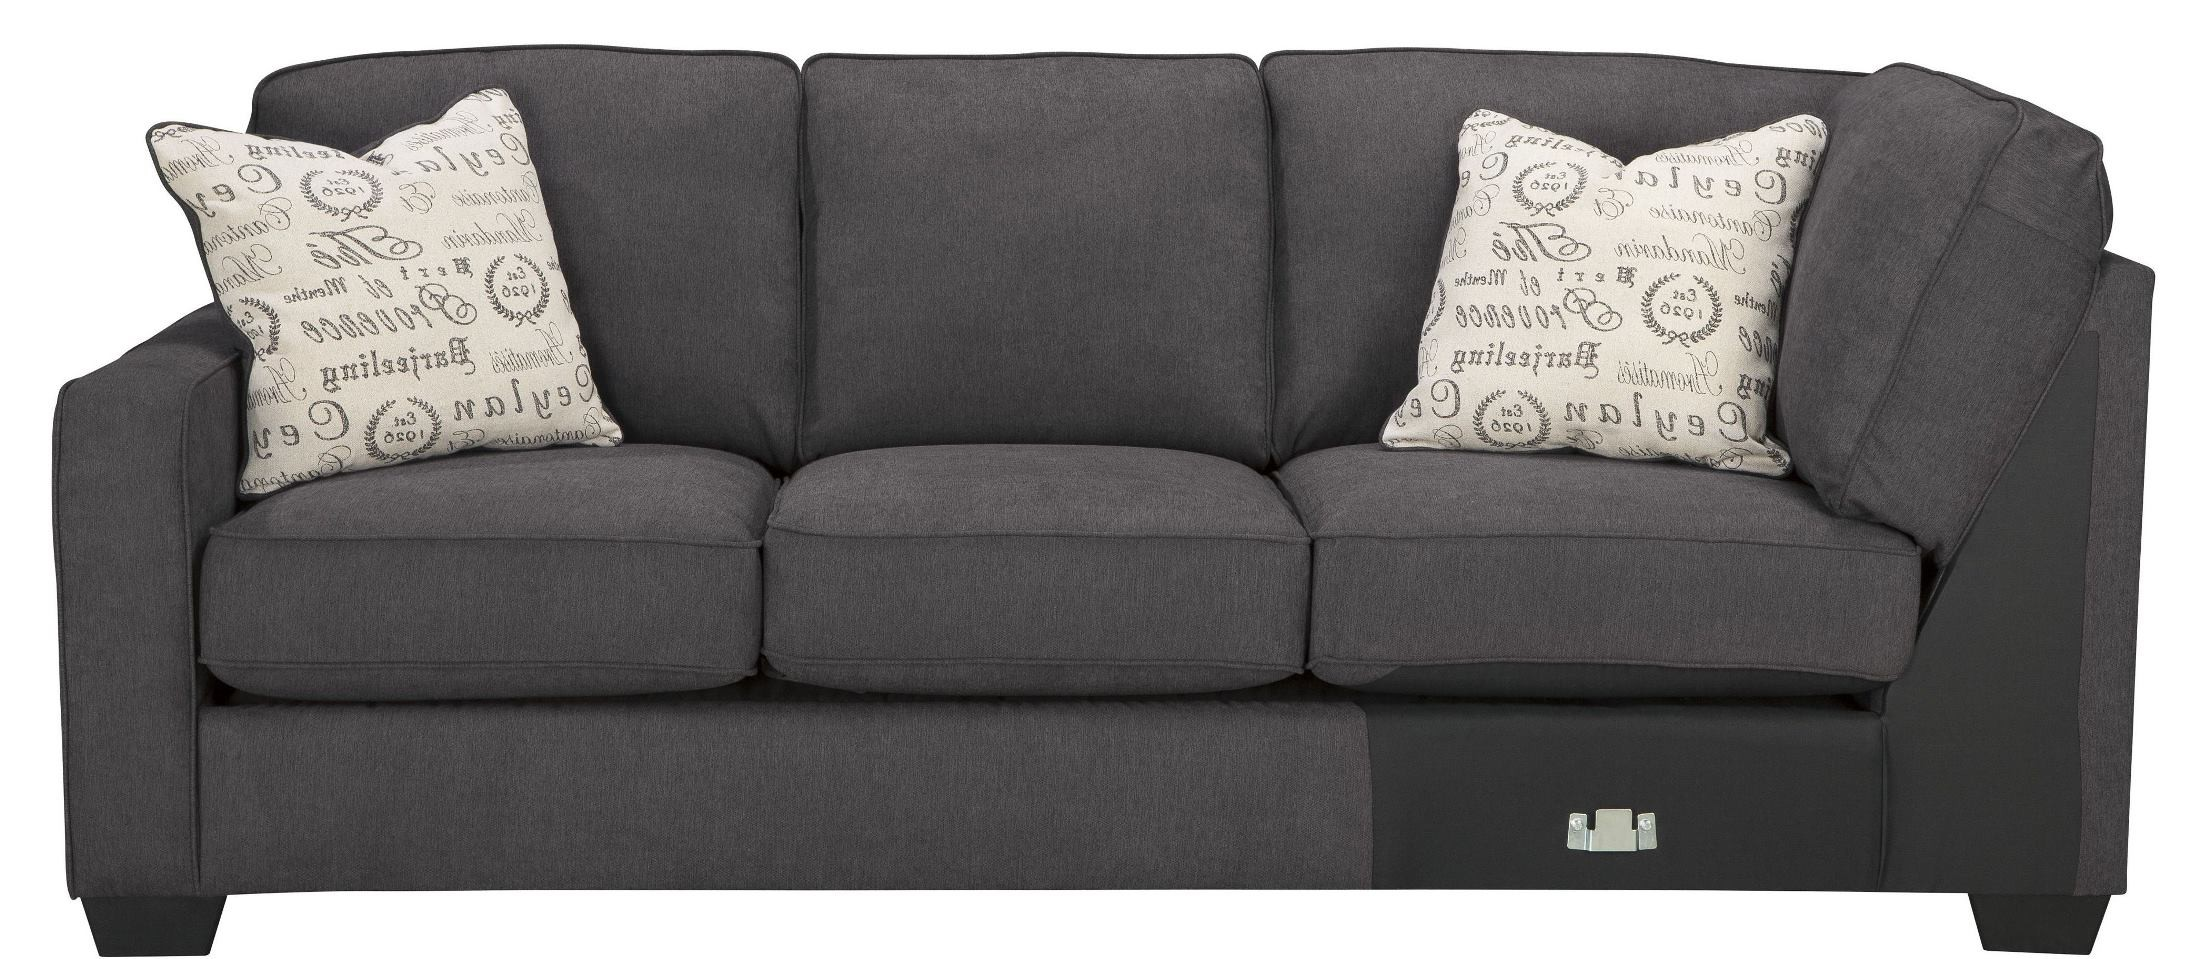 Alenya Charcoal LAF Sectional from Ashley 55 67